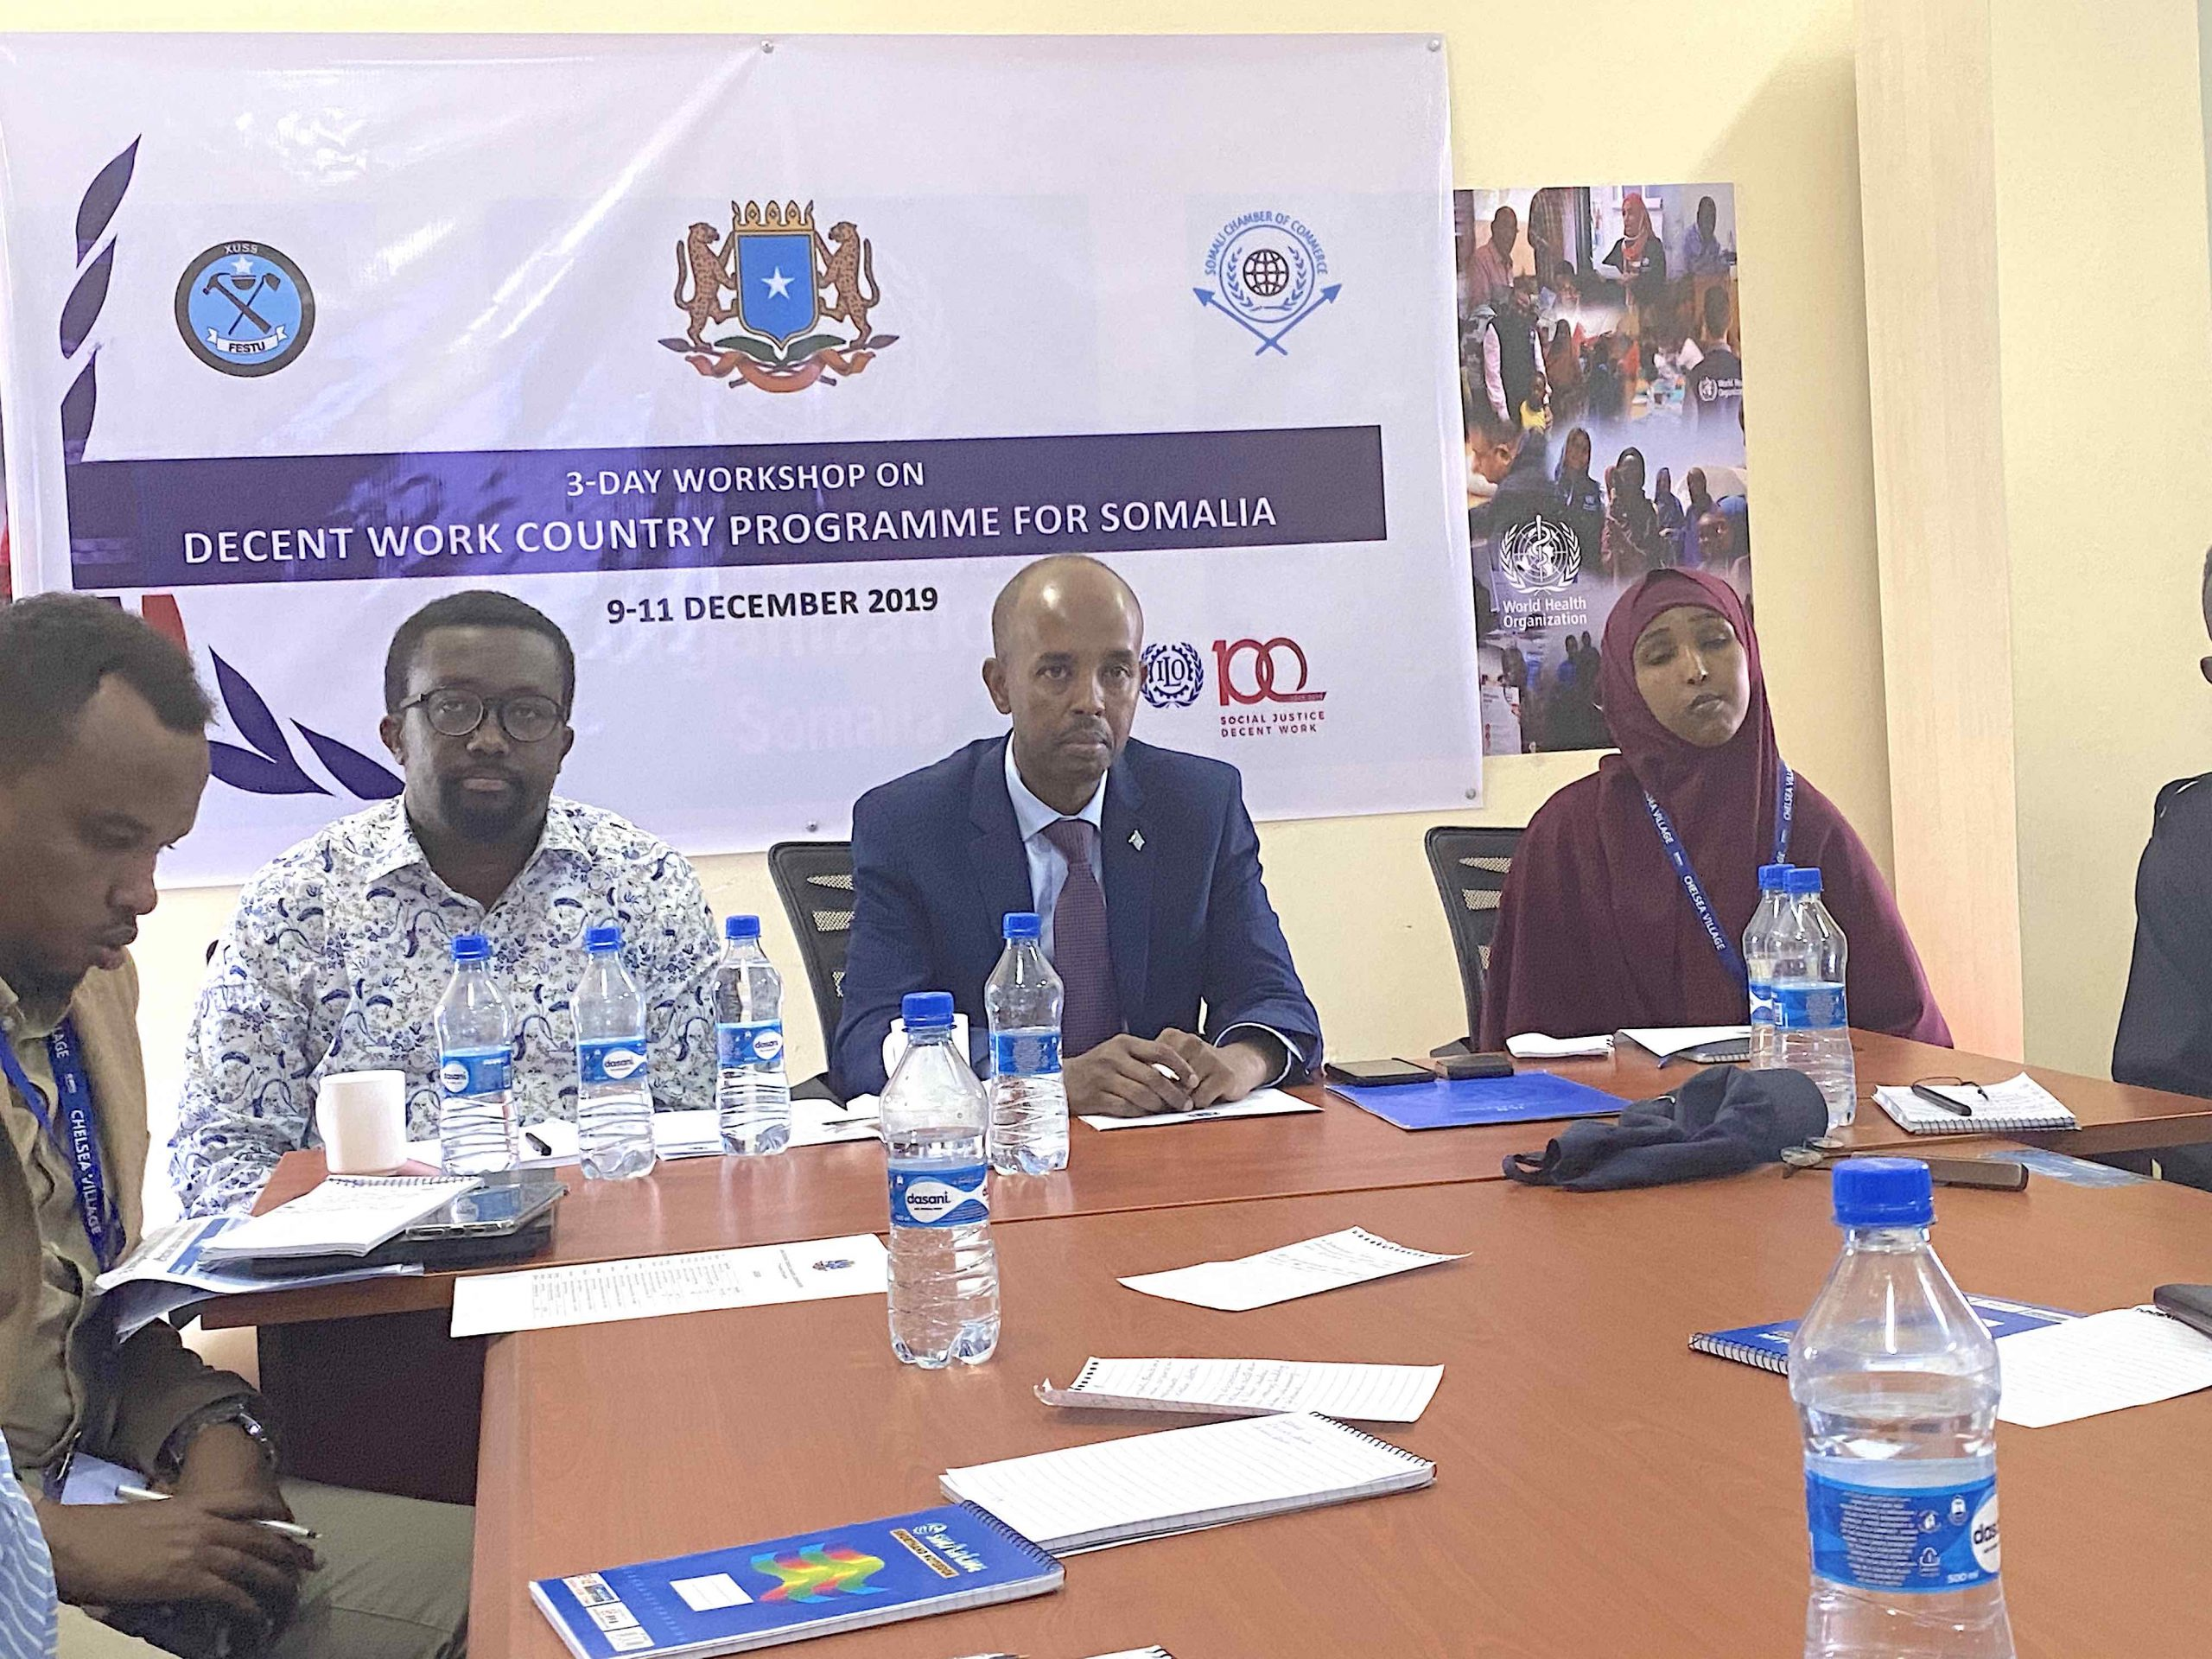 Somali Government, Employers and Workers agreed on priorities for Decent Work Country Programme